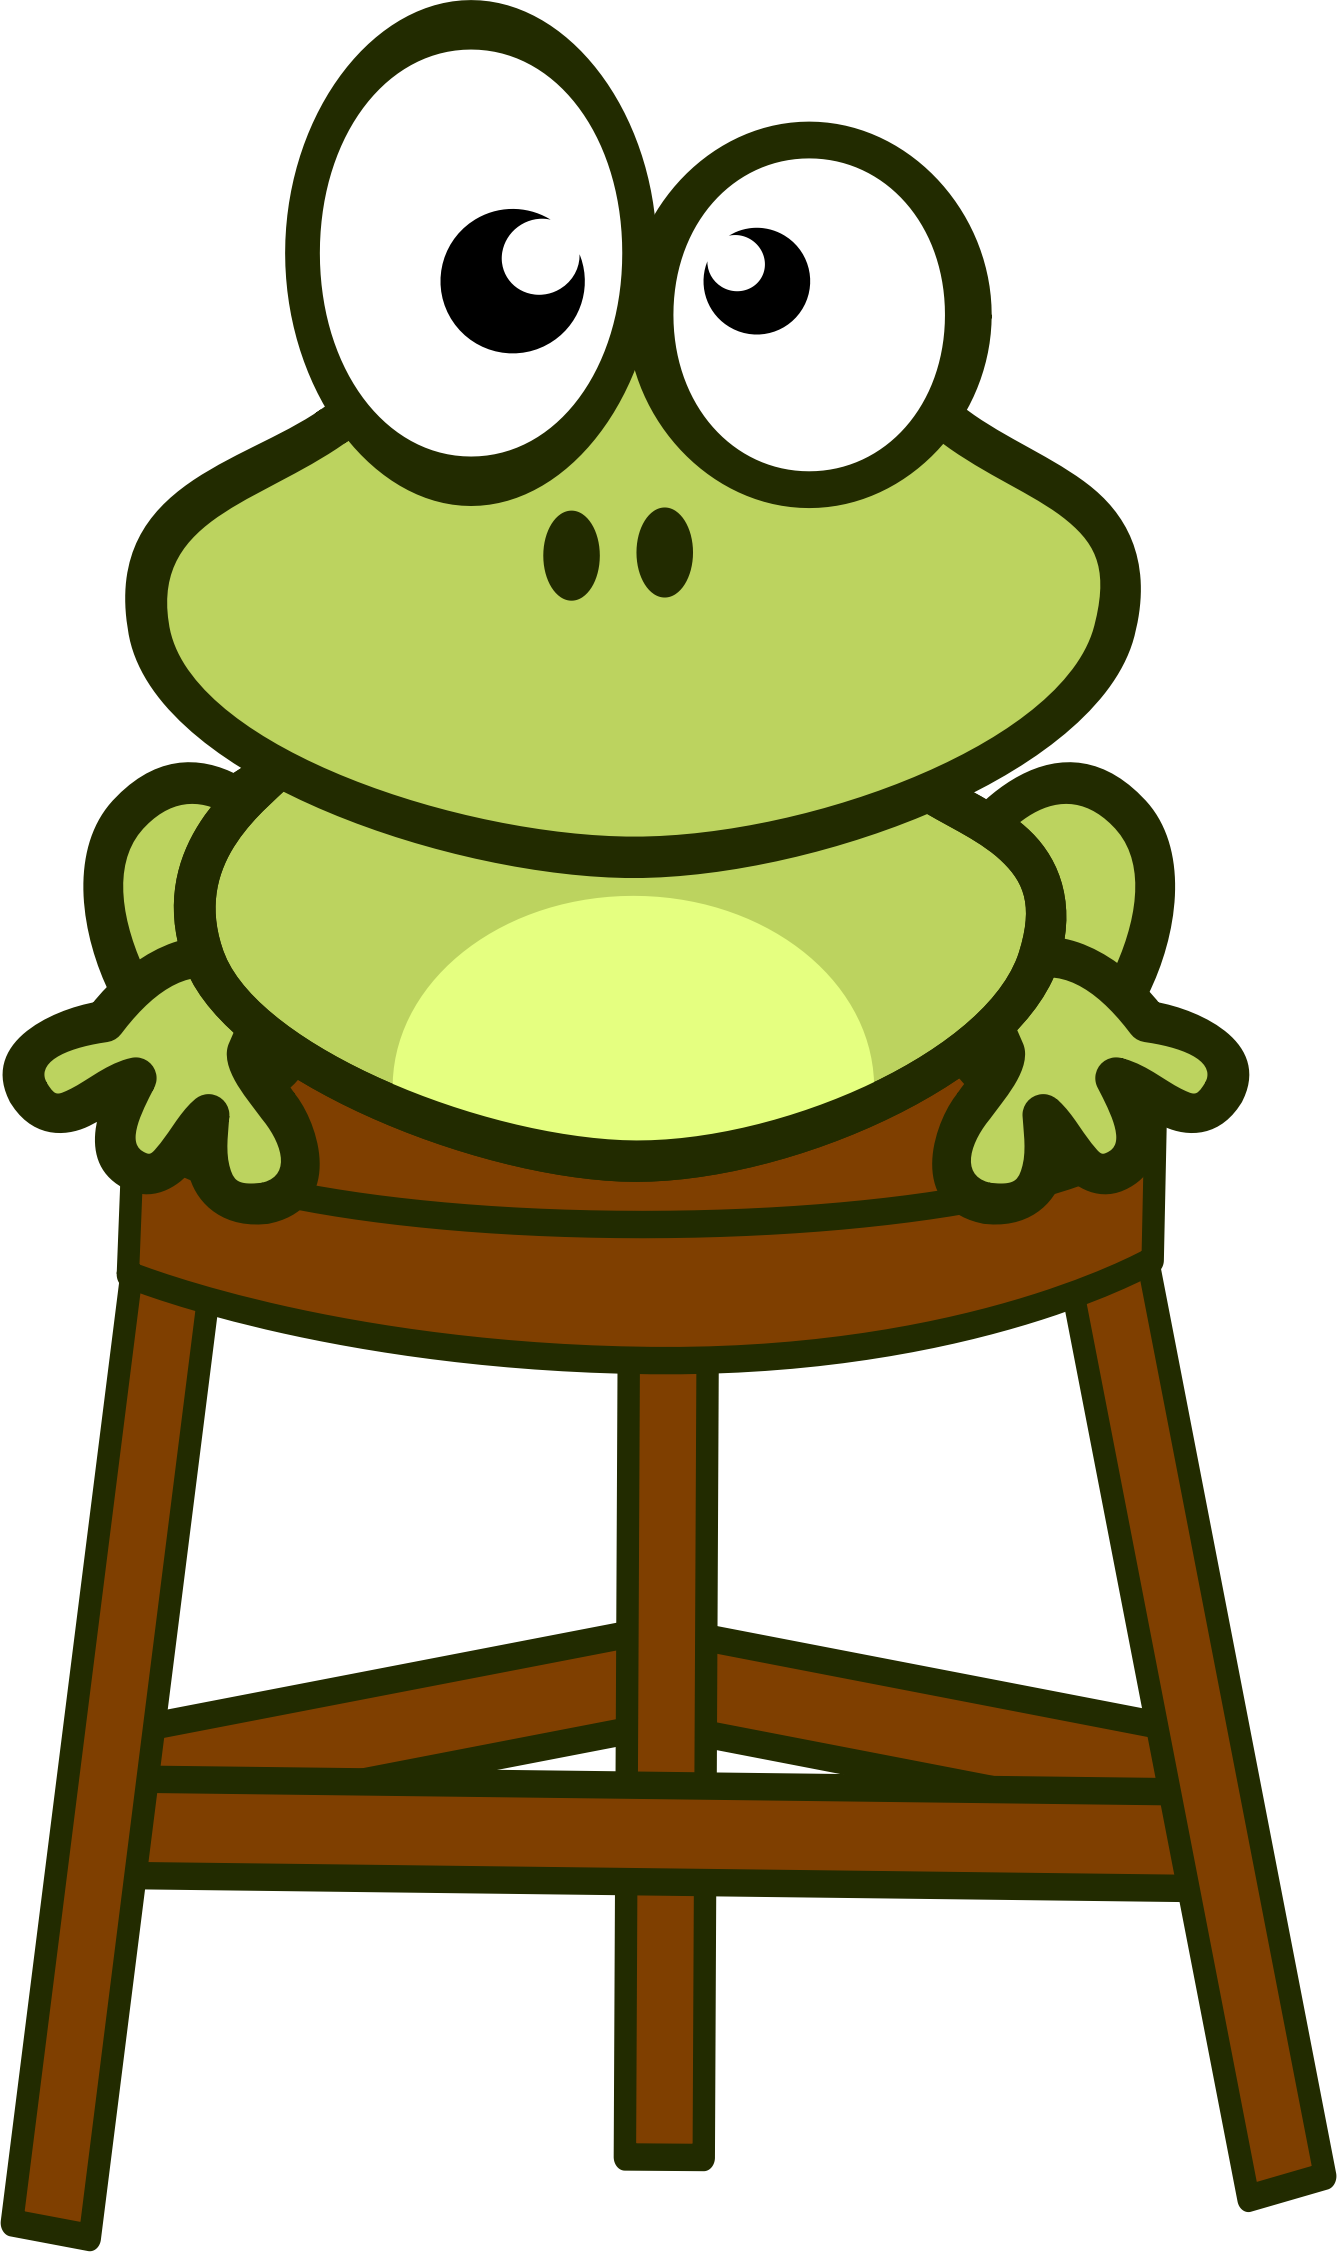 frog on stool by ruthirsty